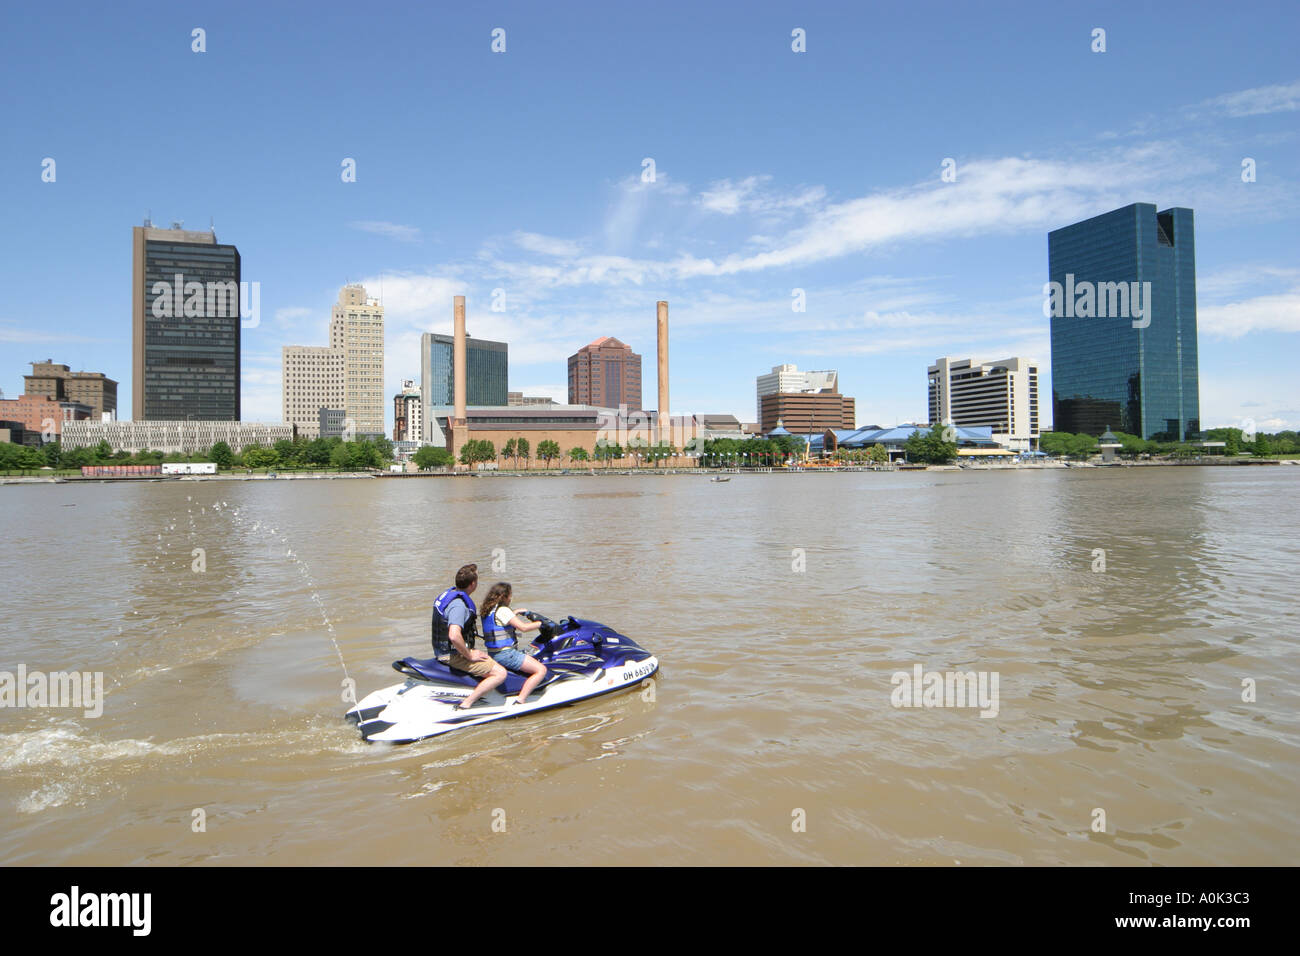 Ohio lucas county maumee - Toledo Ohio Maumee River Jet Ski Downtown Skyline View From The Docks Father Daughter Girl